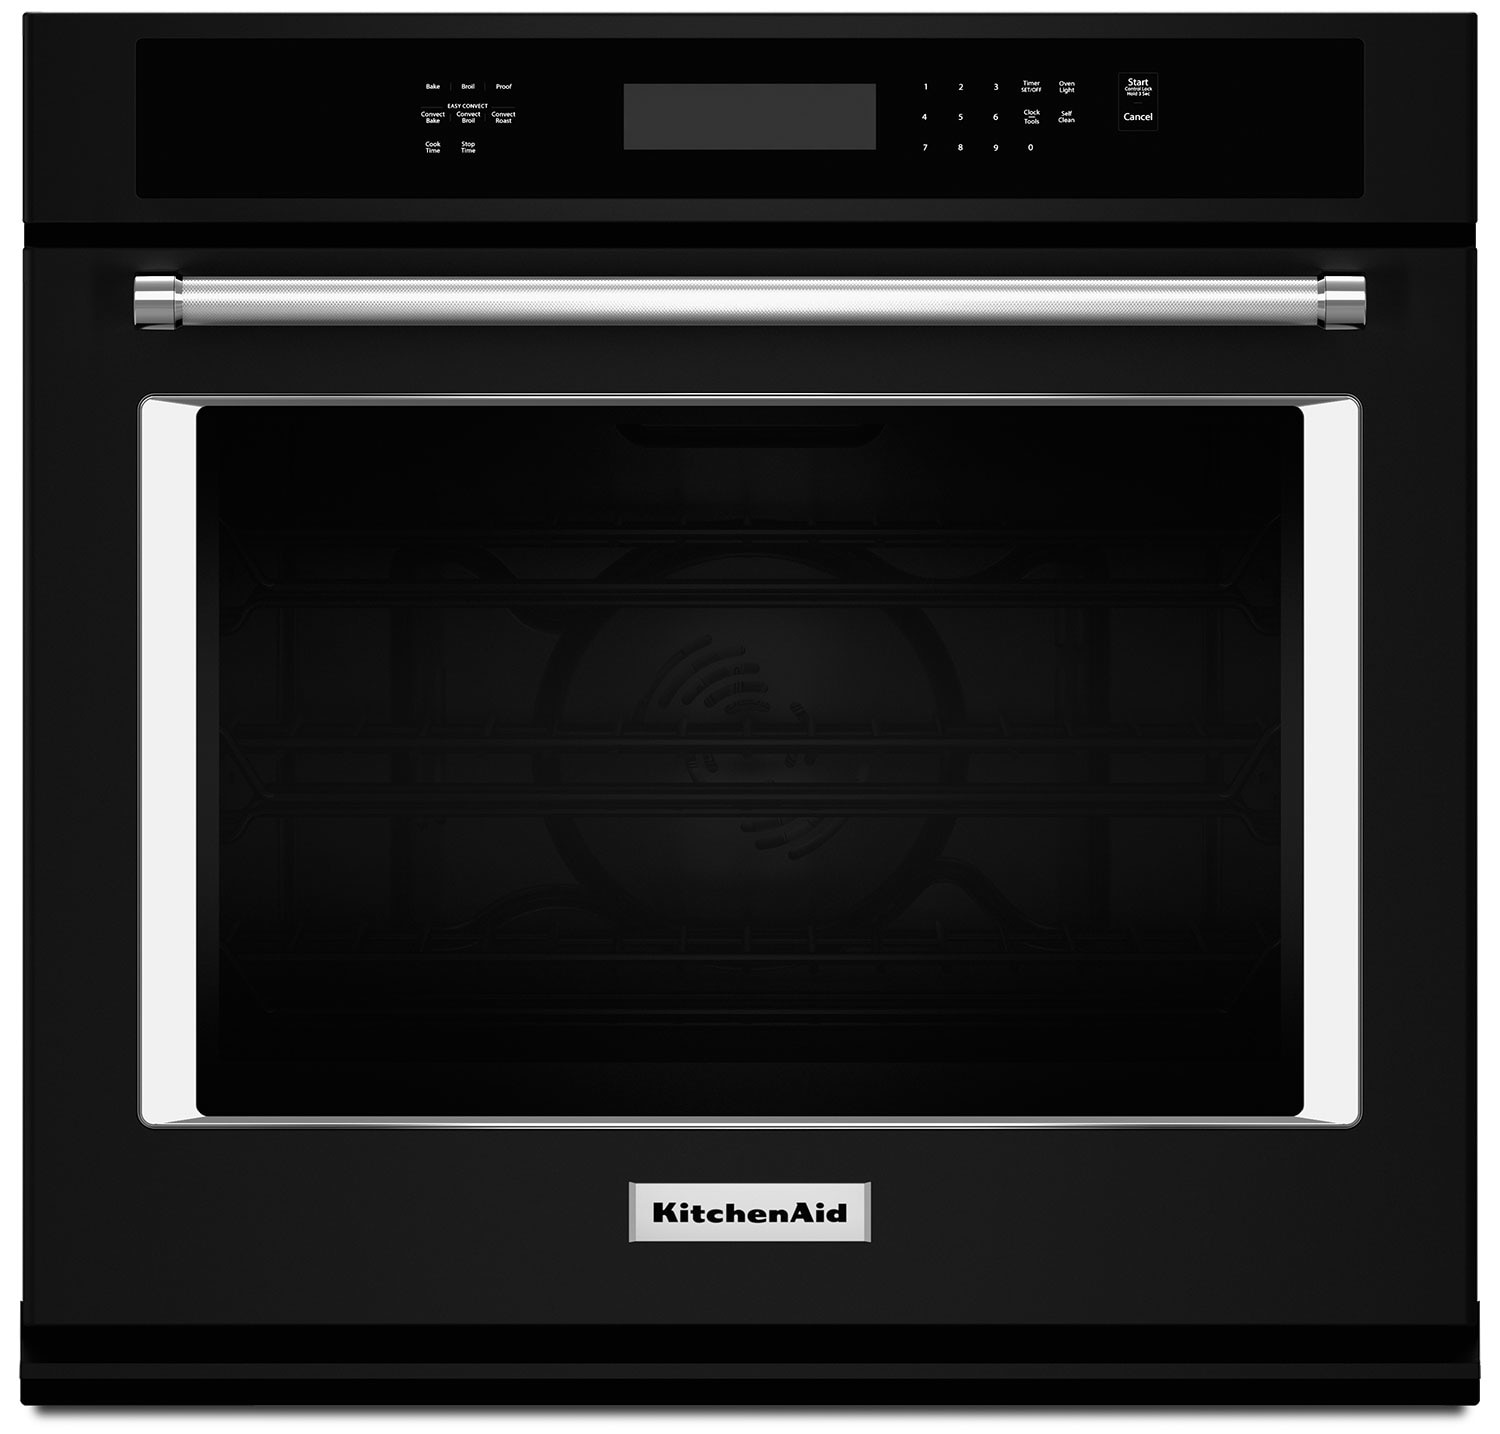 KitchenAid 5.0 Cu. Ft. Single Wall Oven with Even-Heat™ True Convection - Black